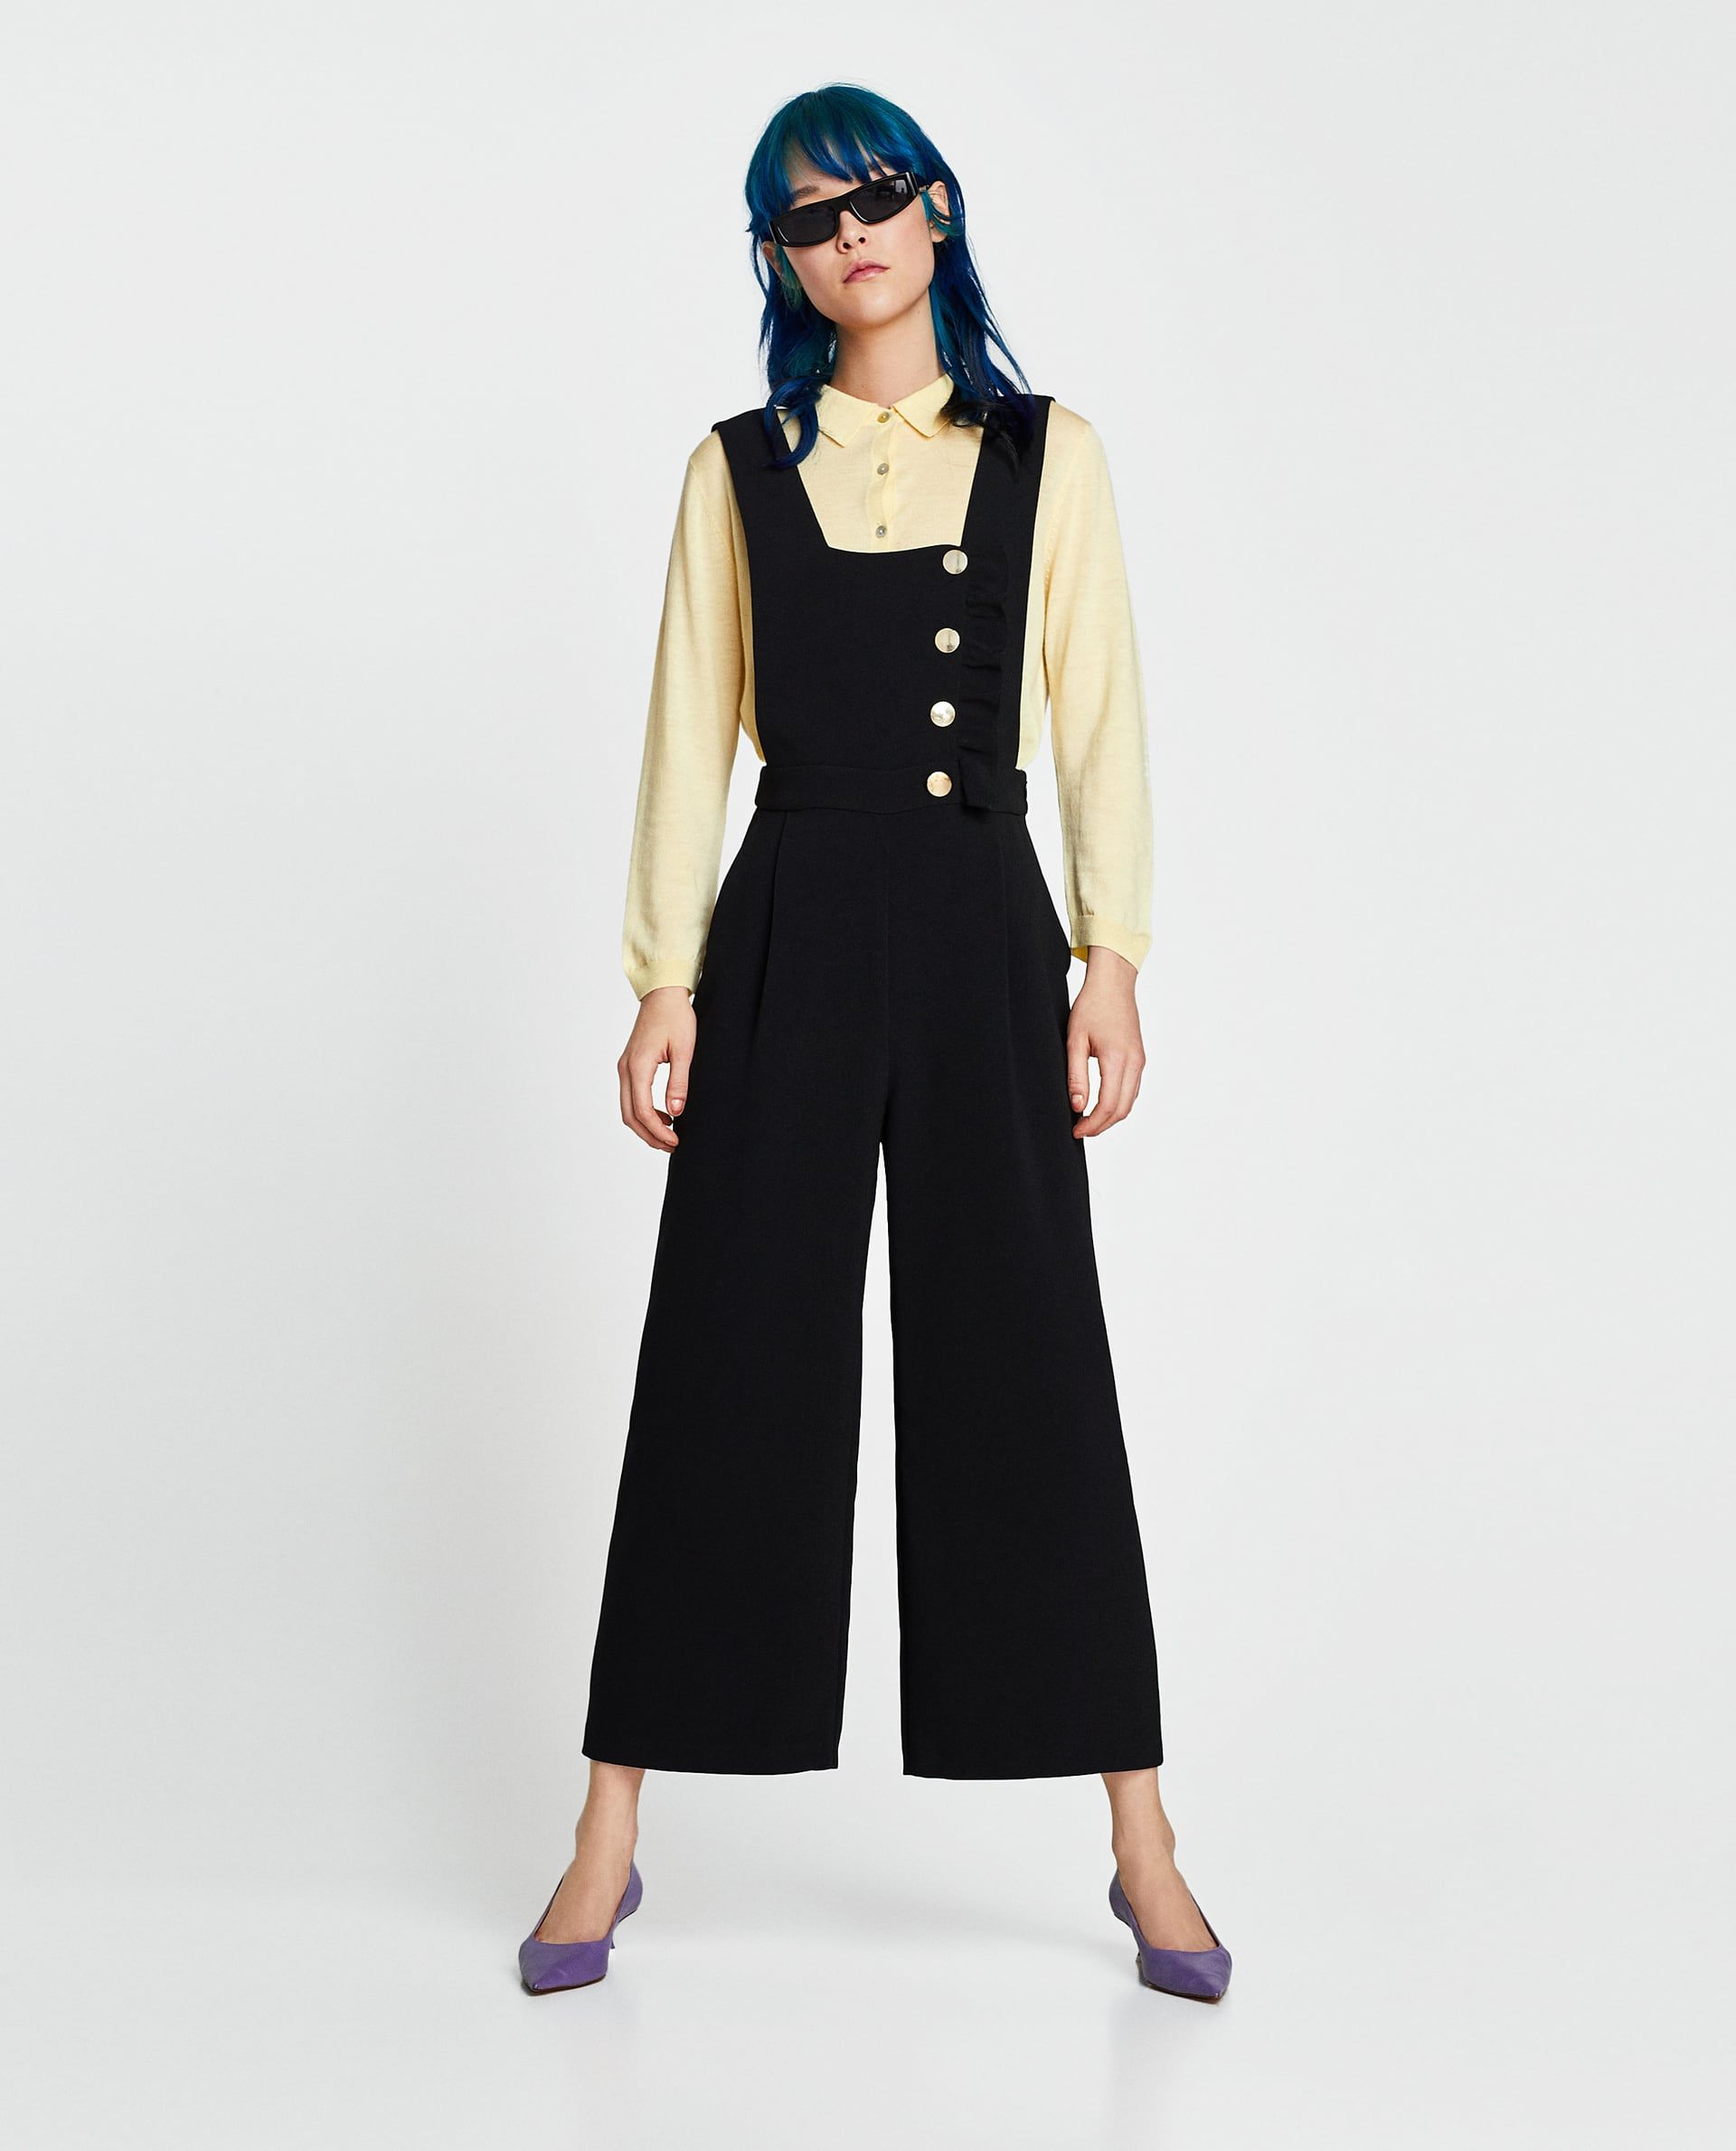 7a3f3218151 Image 1 of DUNGAREES WITH BUTTONS AND RUFFLE TRIM from Zara